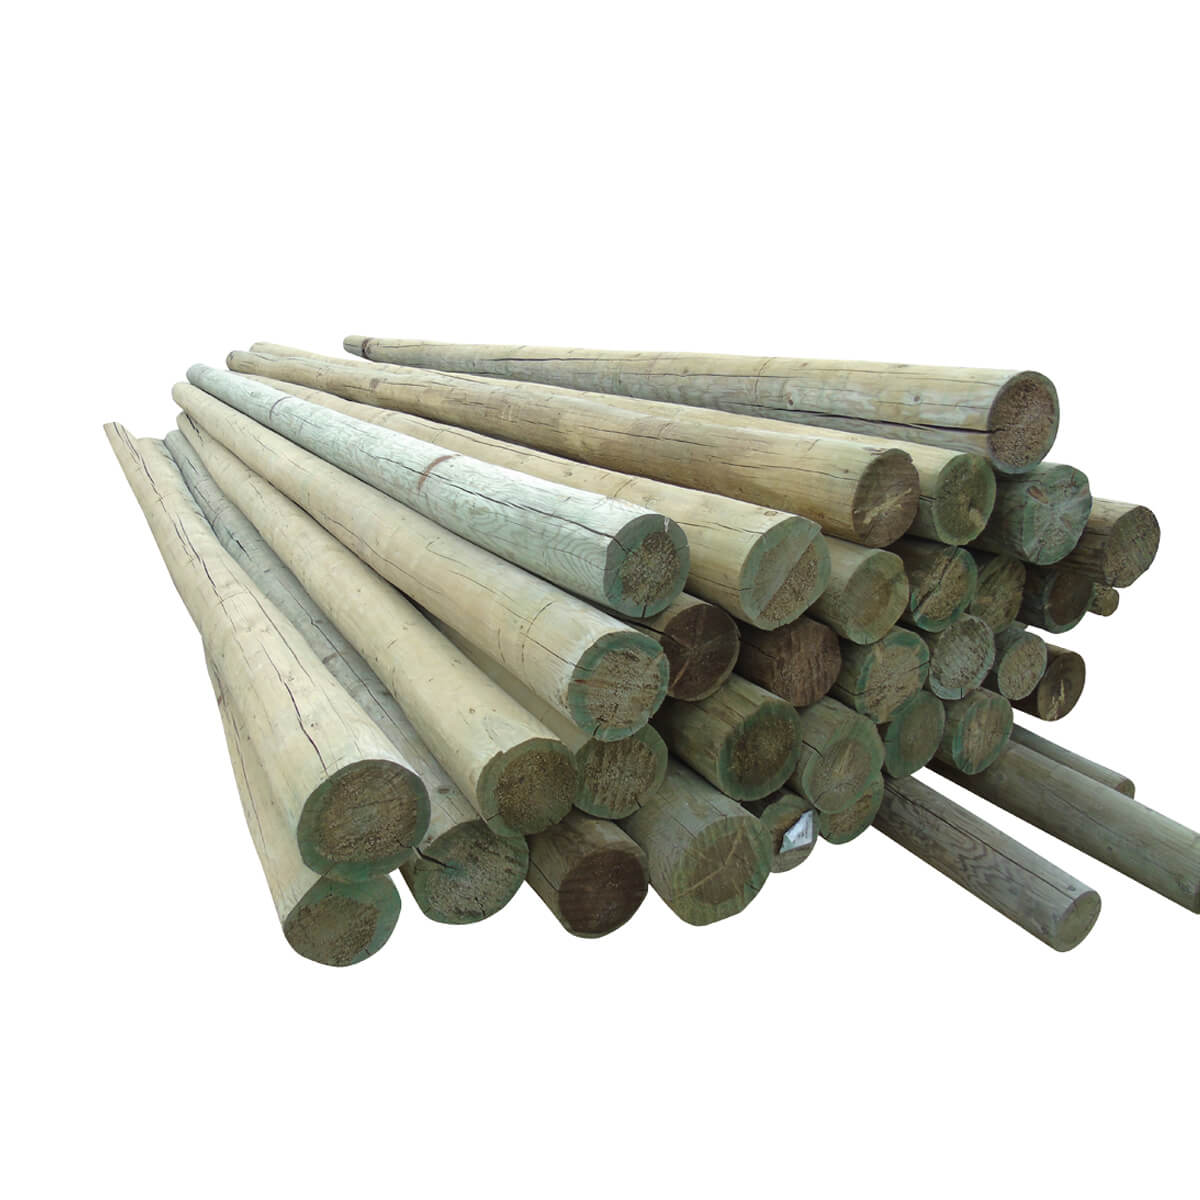 Peeled Fence Poles - Blunt - 6-in x 10-ft